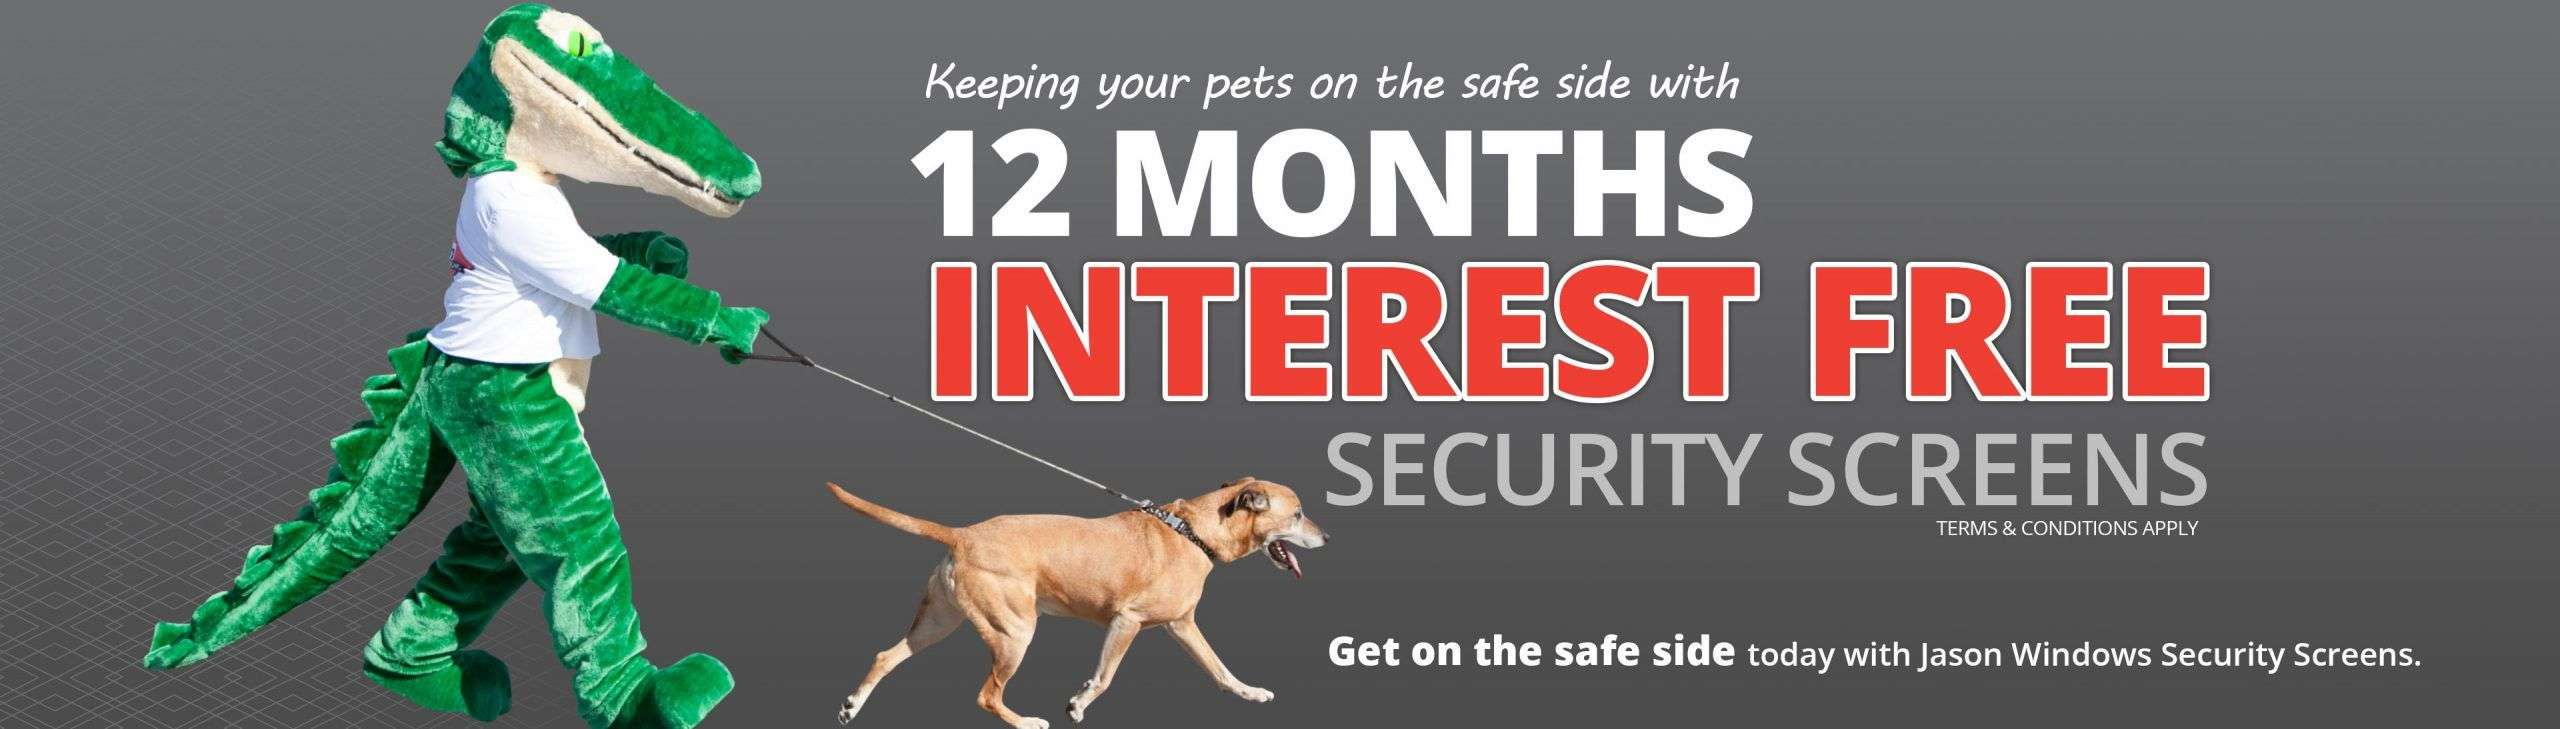 Keeping your pets on the safe side with 12 months interest free security screens